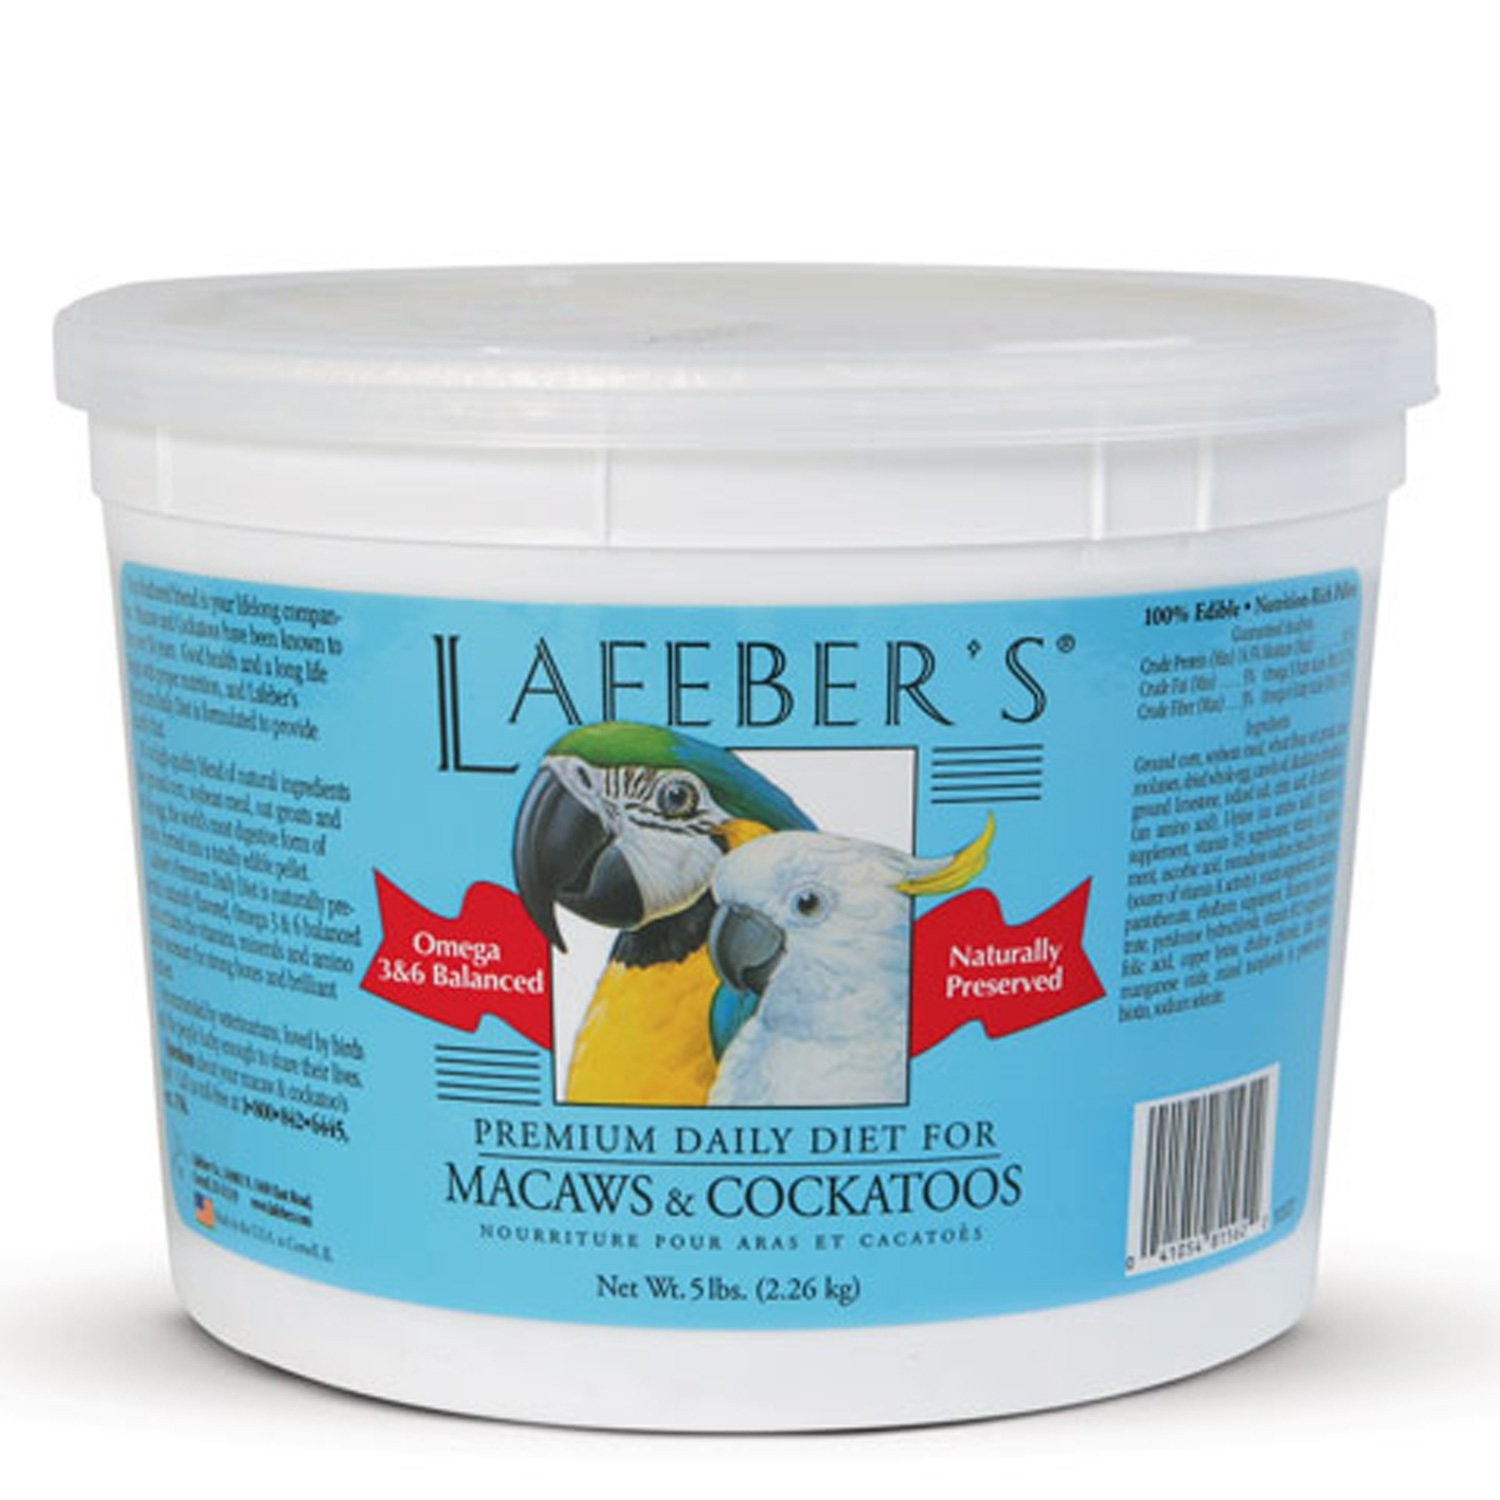 Lafeber's Premium Daily Diet for Macaws and Cockatoos